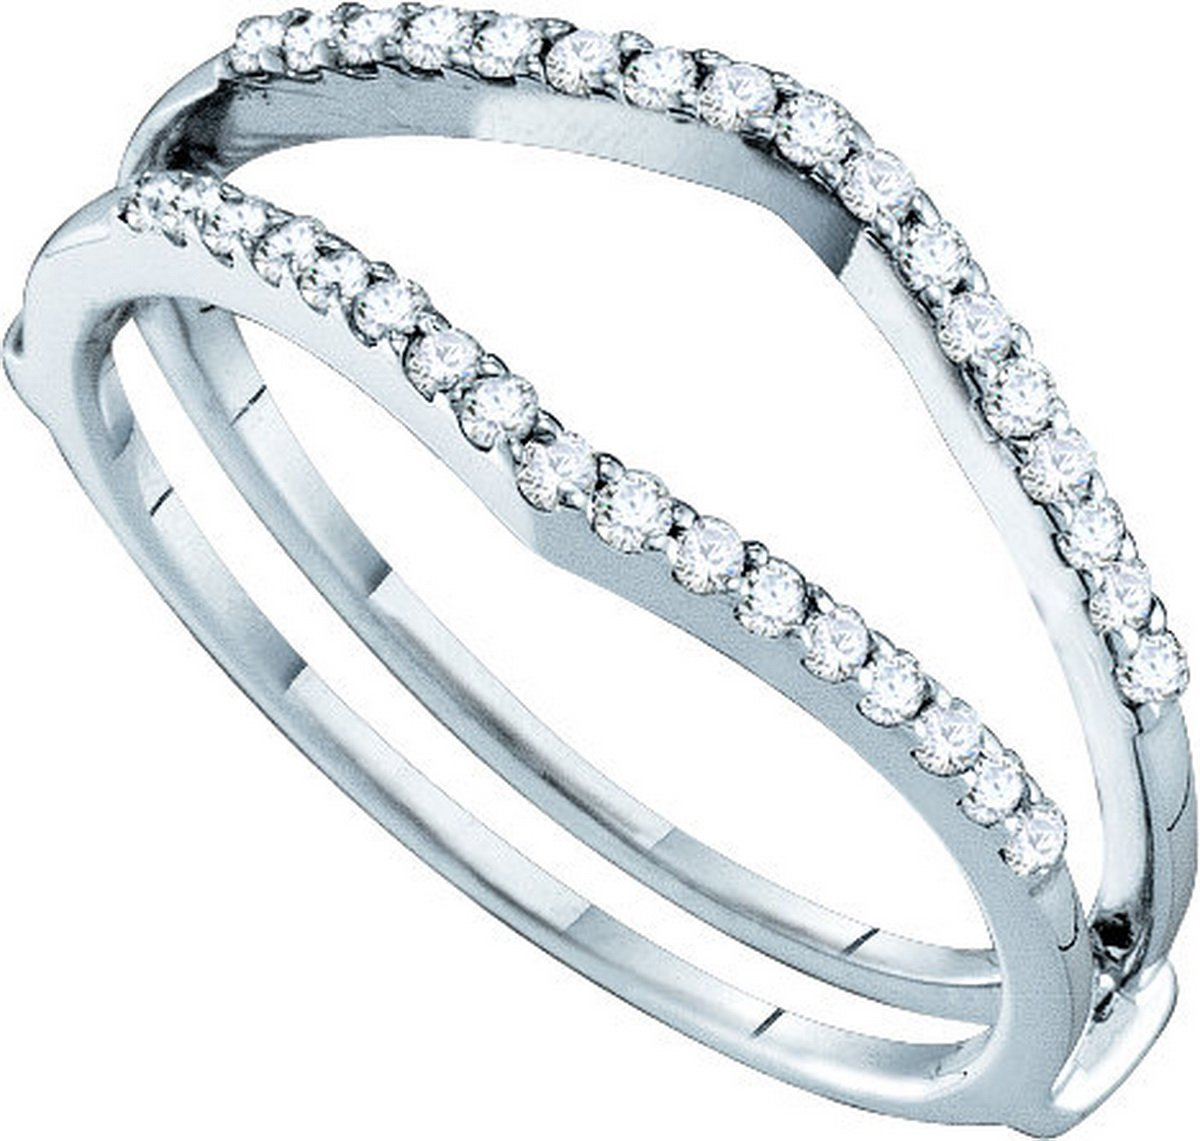 Sonia Jewels Size 9-14k White Gold Round Diamond Ring Guard Wrap Enhancer Wedding Band (1/4 Cttw)